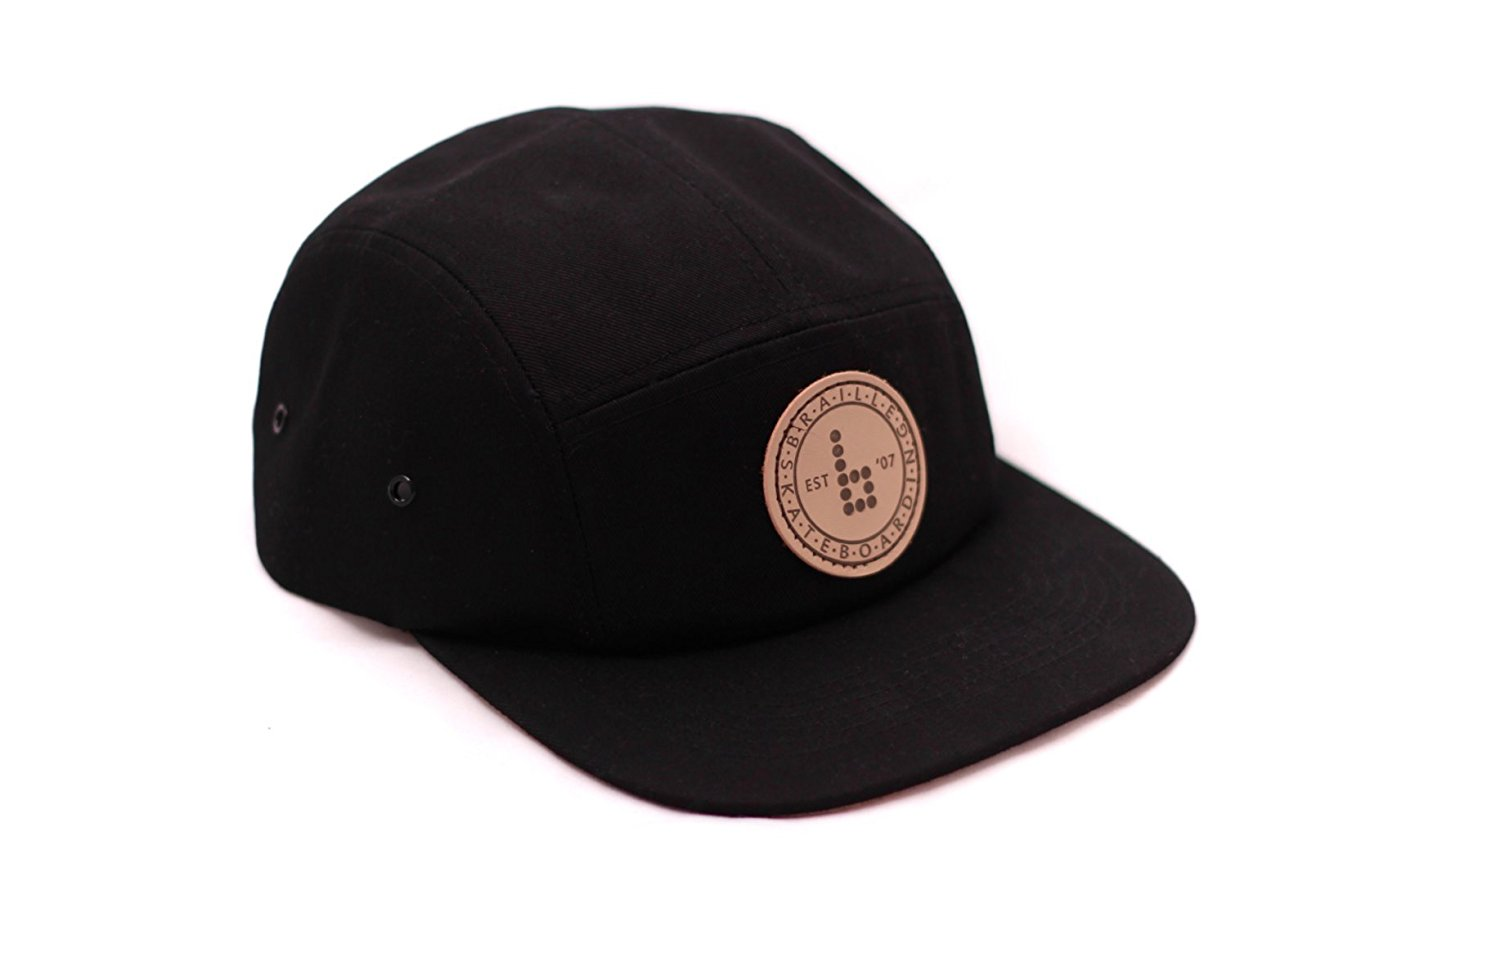 97a647e41a9 Get Quotations · Braille Skateboarding Original 5 Panel Hat. Adjustable  Leather Strap